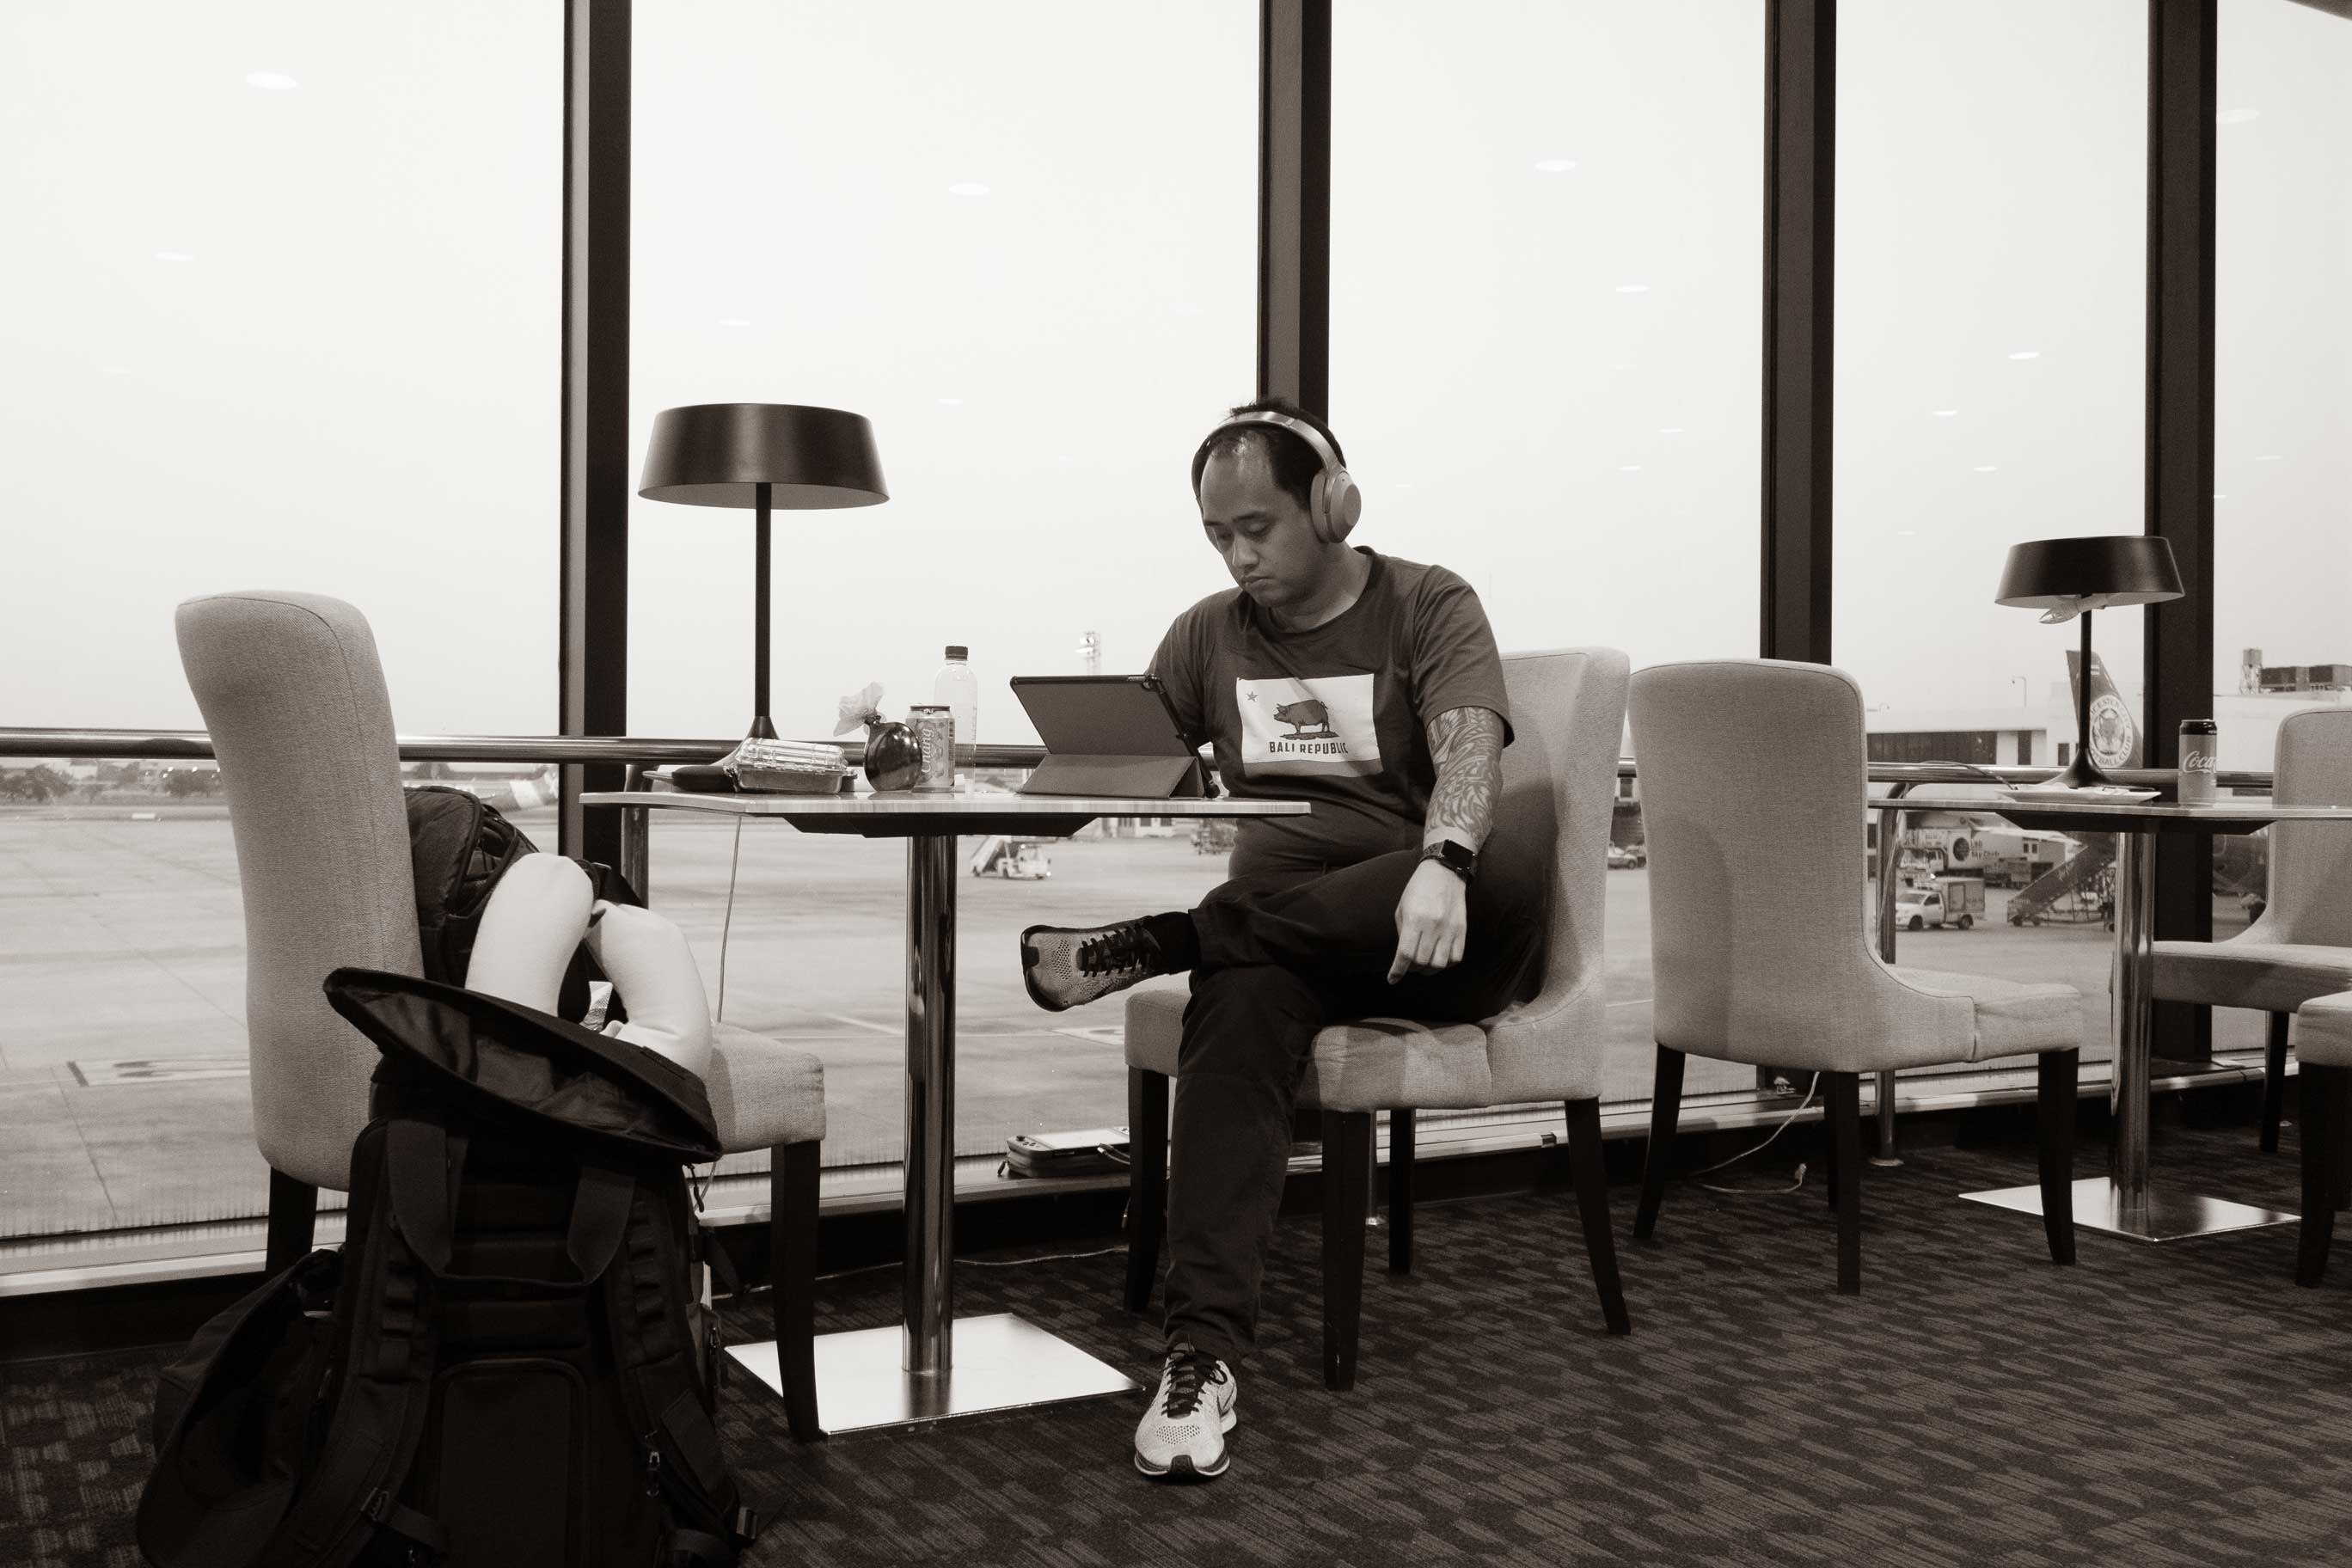 Nico Sitting In An Airport Lounge Contact Me Page Header